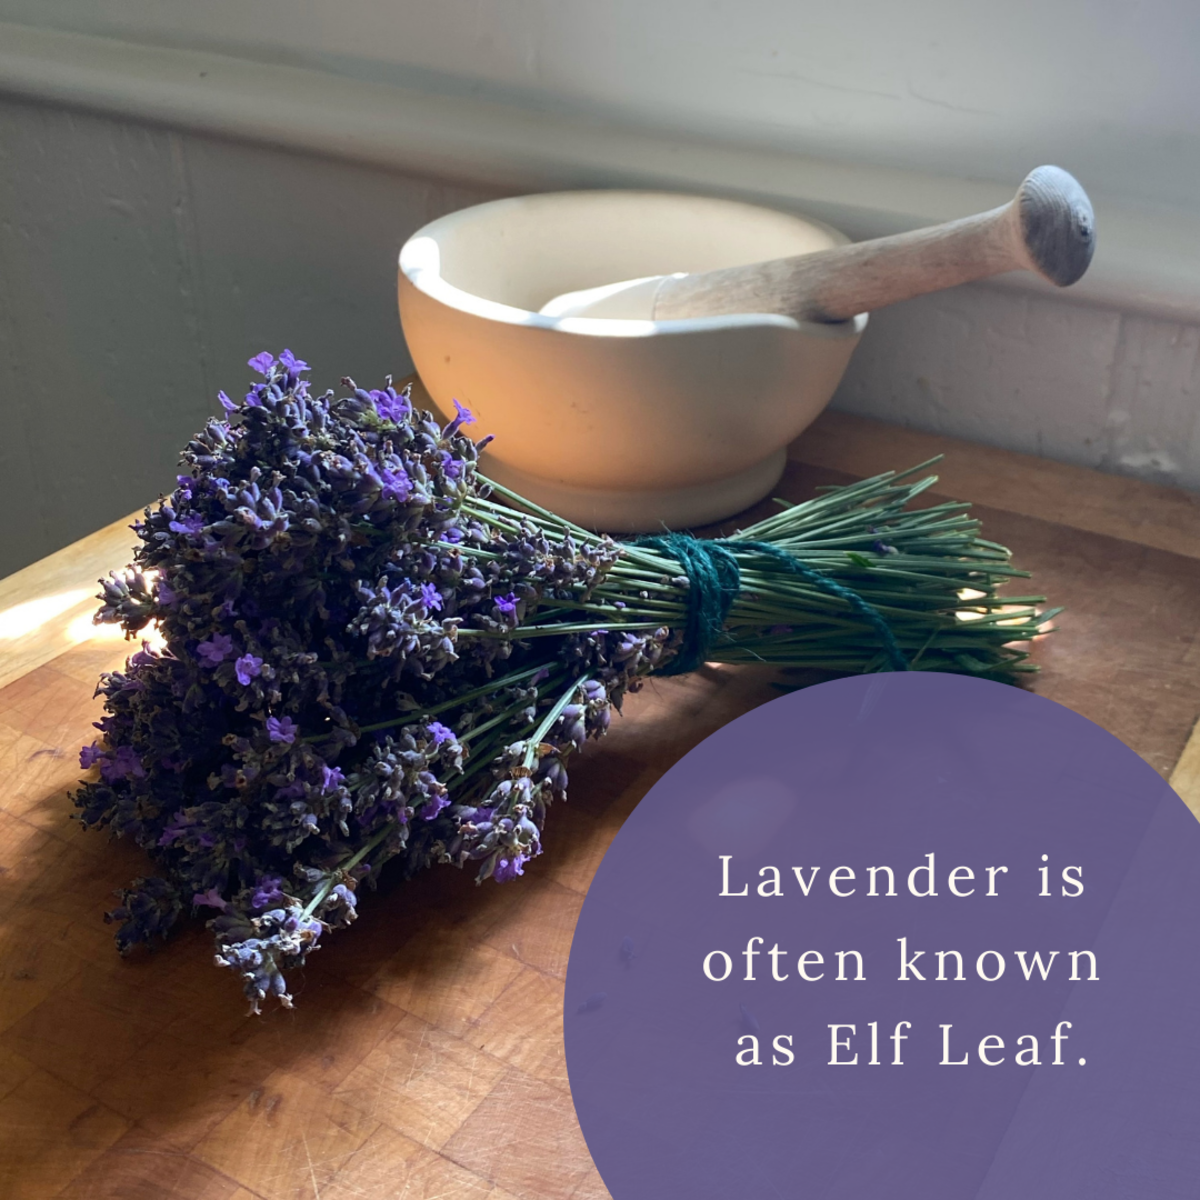 Did you know that lavender has a magical code name?